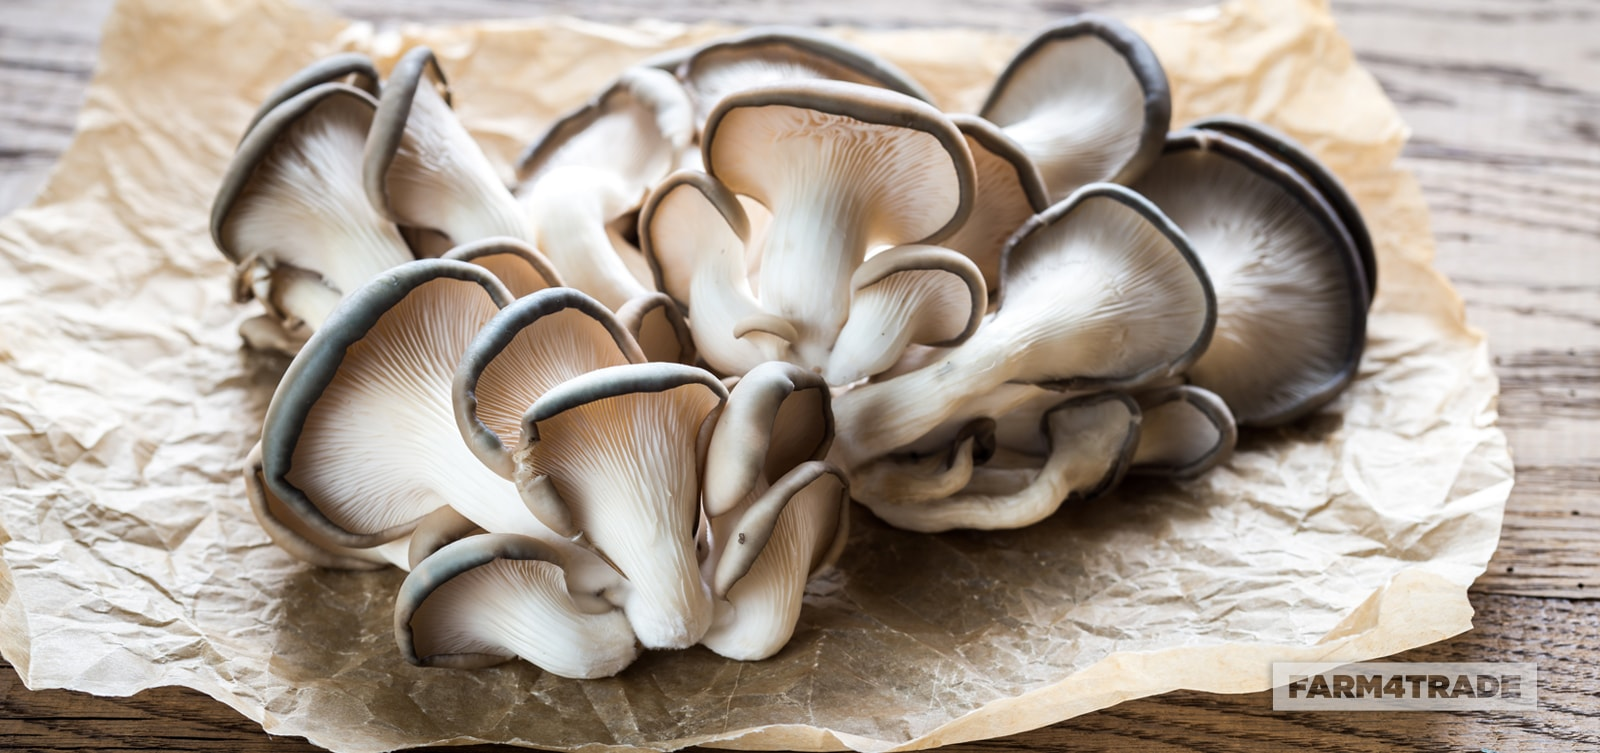 Production of oyster mushroom using agricultural wastes-Farm4Trade